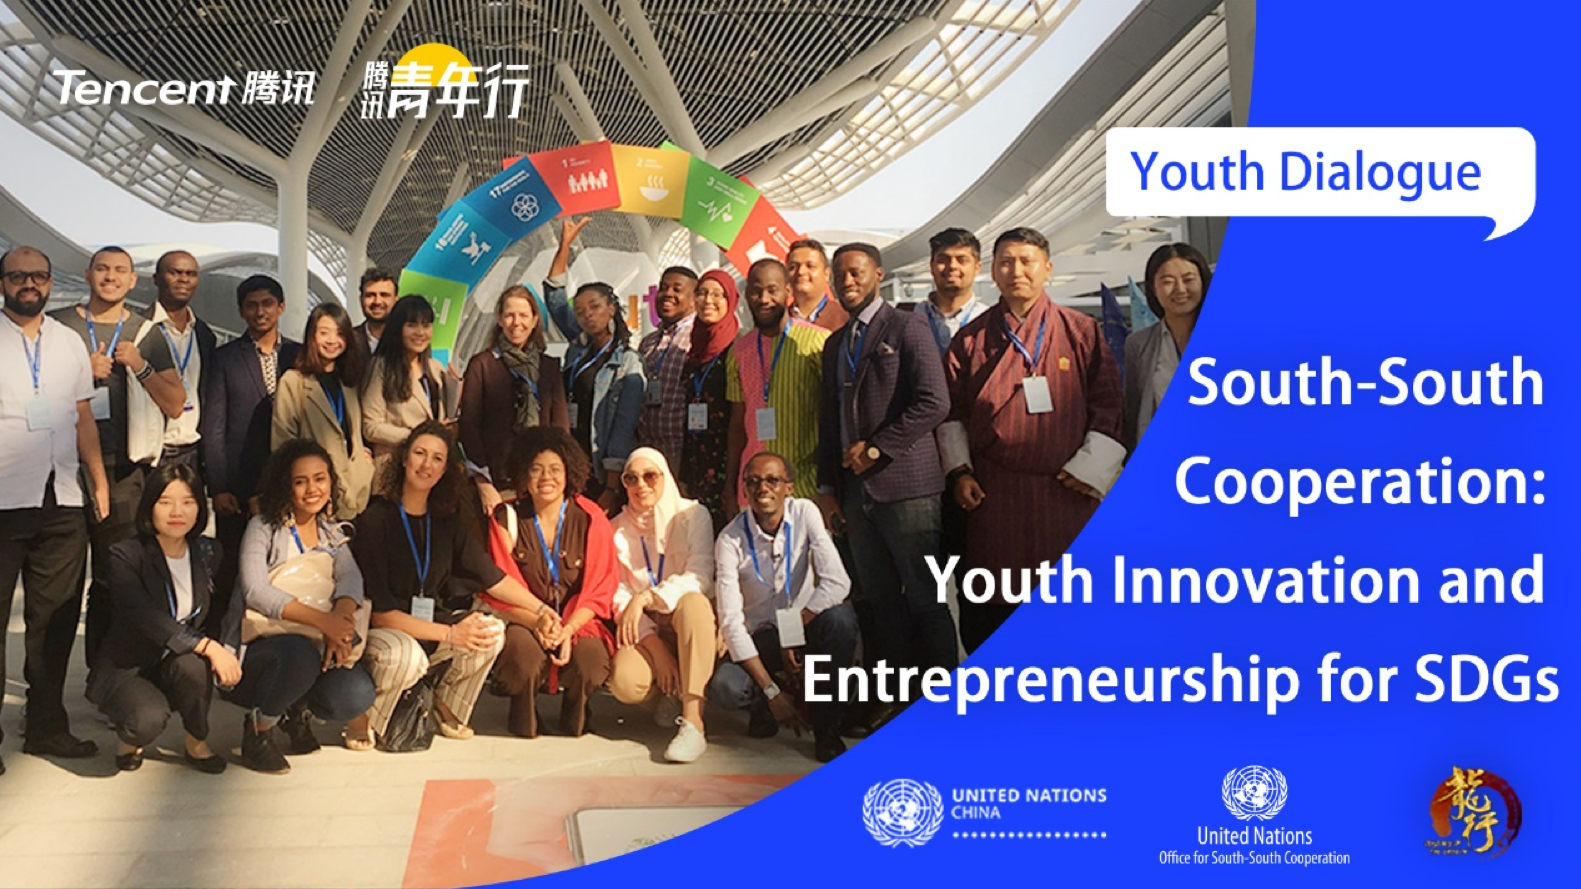 International Youth Day 2020: Webinar on South-South Cooperation: Youth Entrepreneurship and Innovation for SDGs